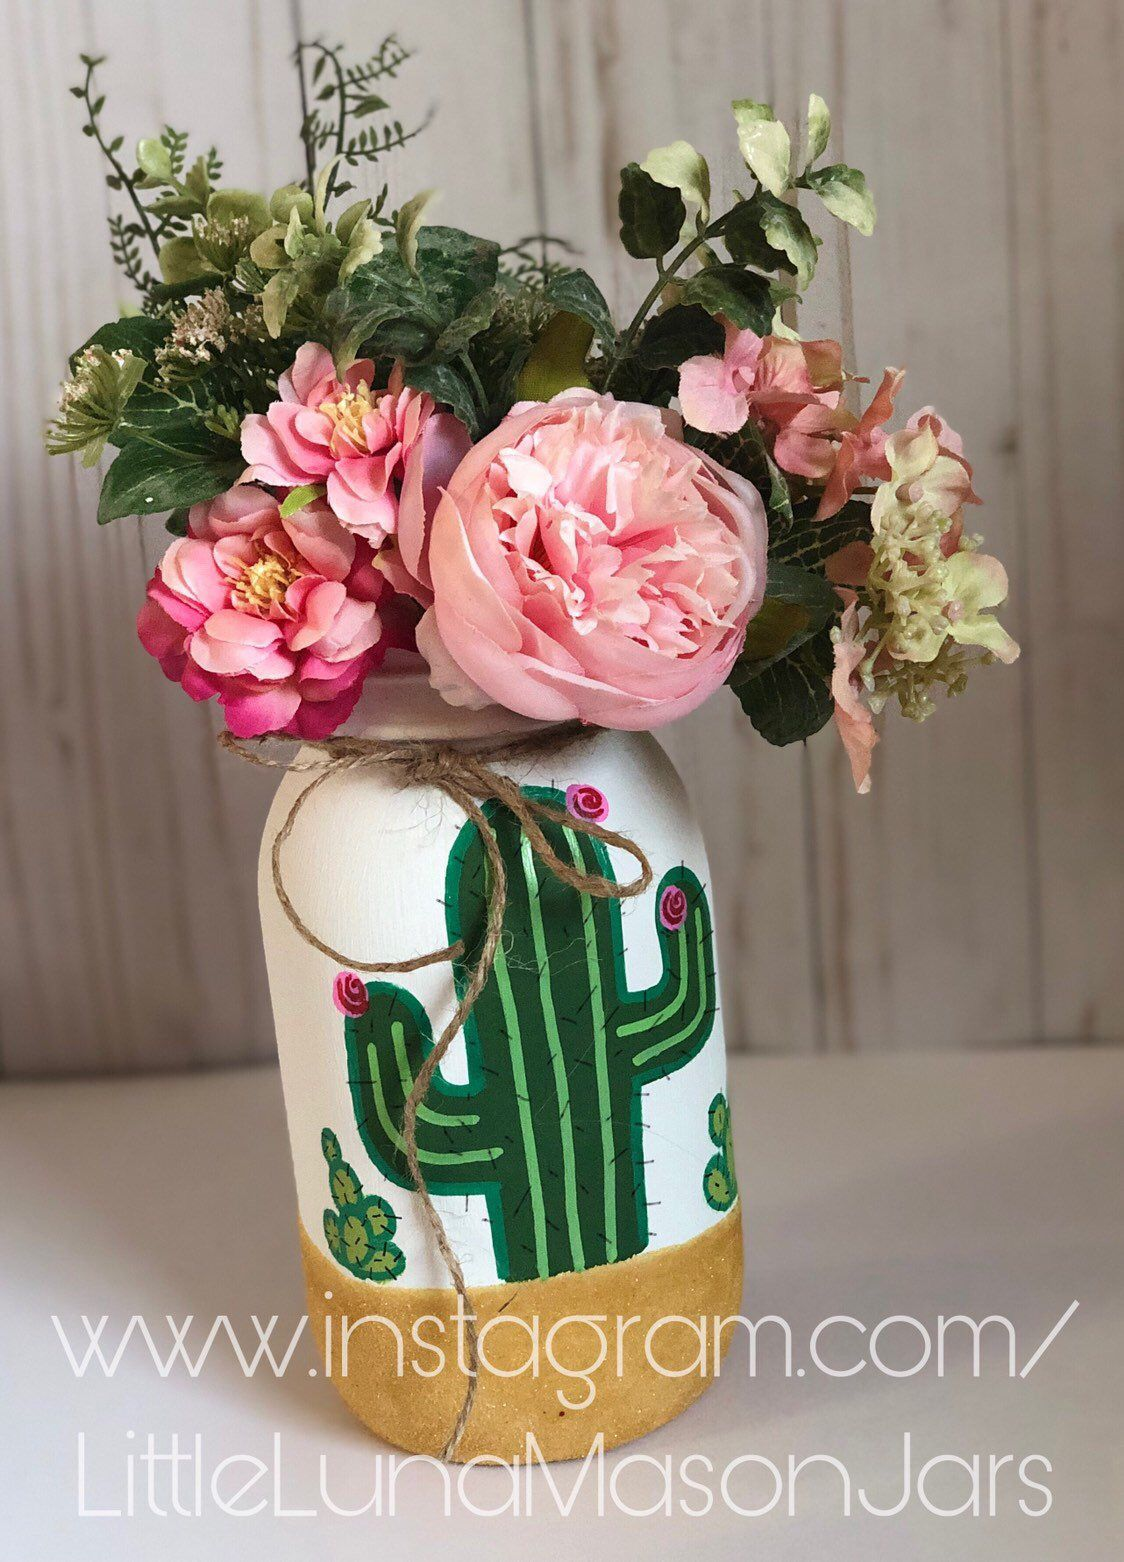 Pint size cactus style glass jar(s), cactus office decor, baby shower decor, nursery decorations, cactus office organizer, teacher gift